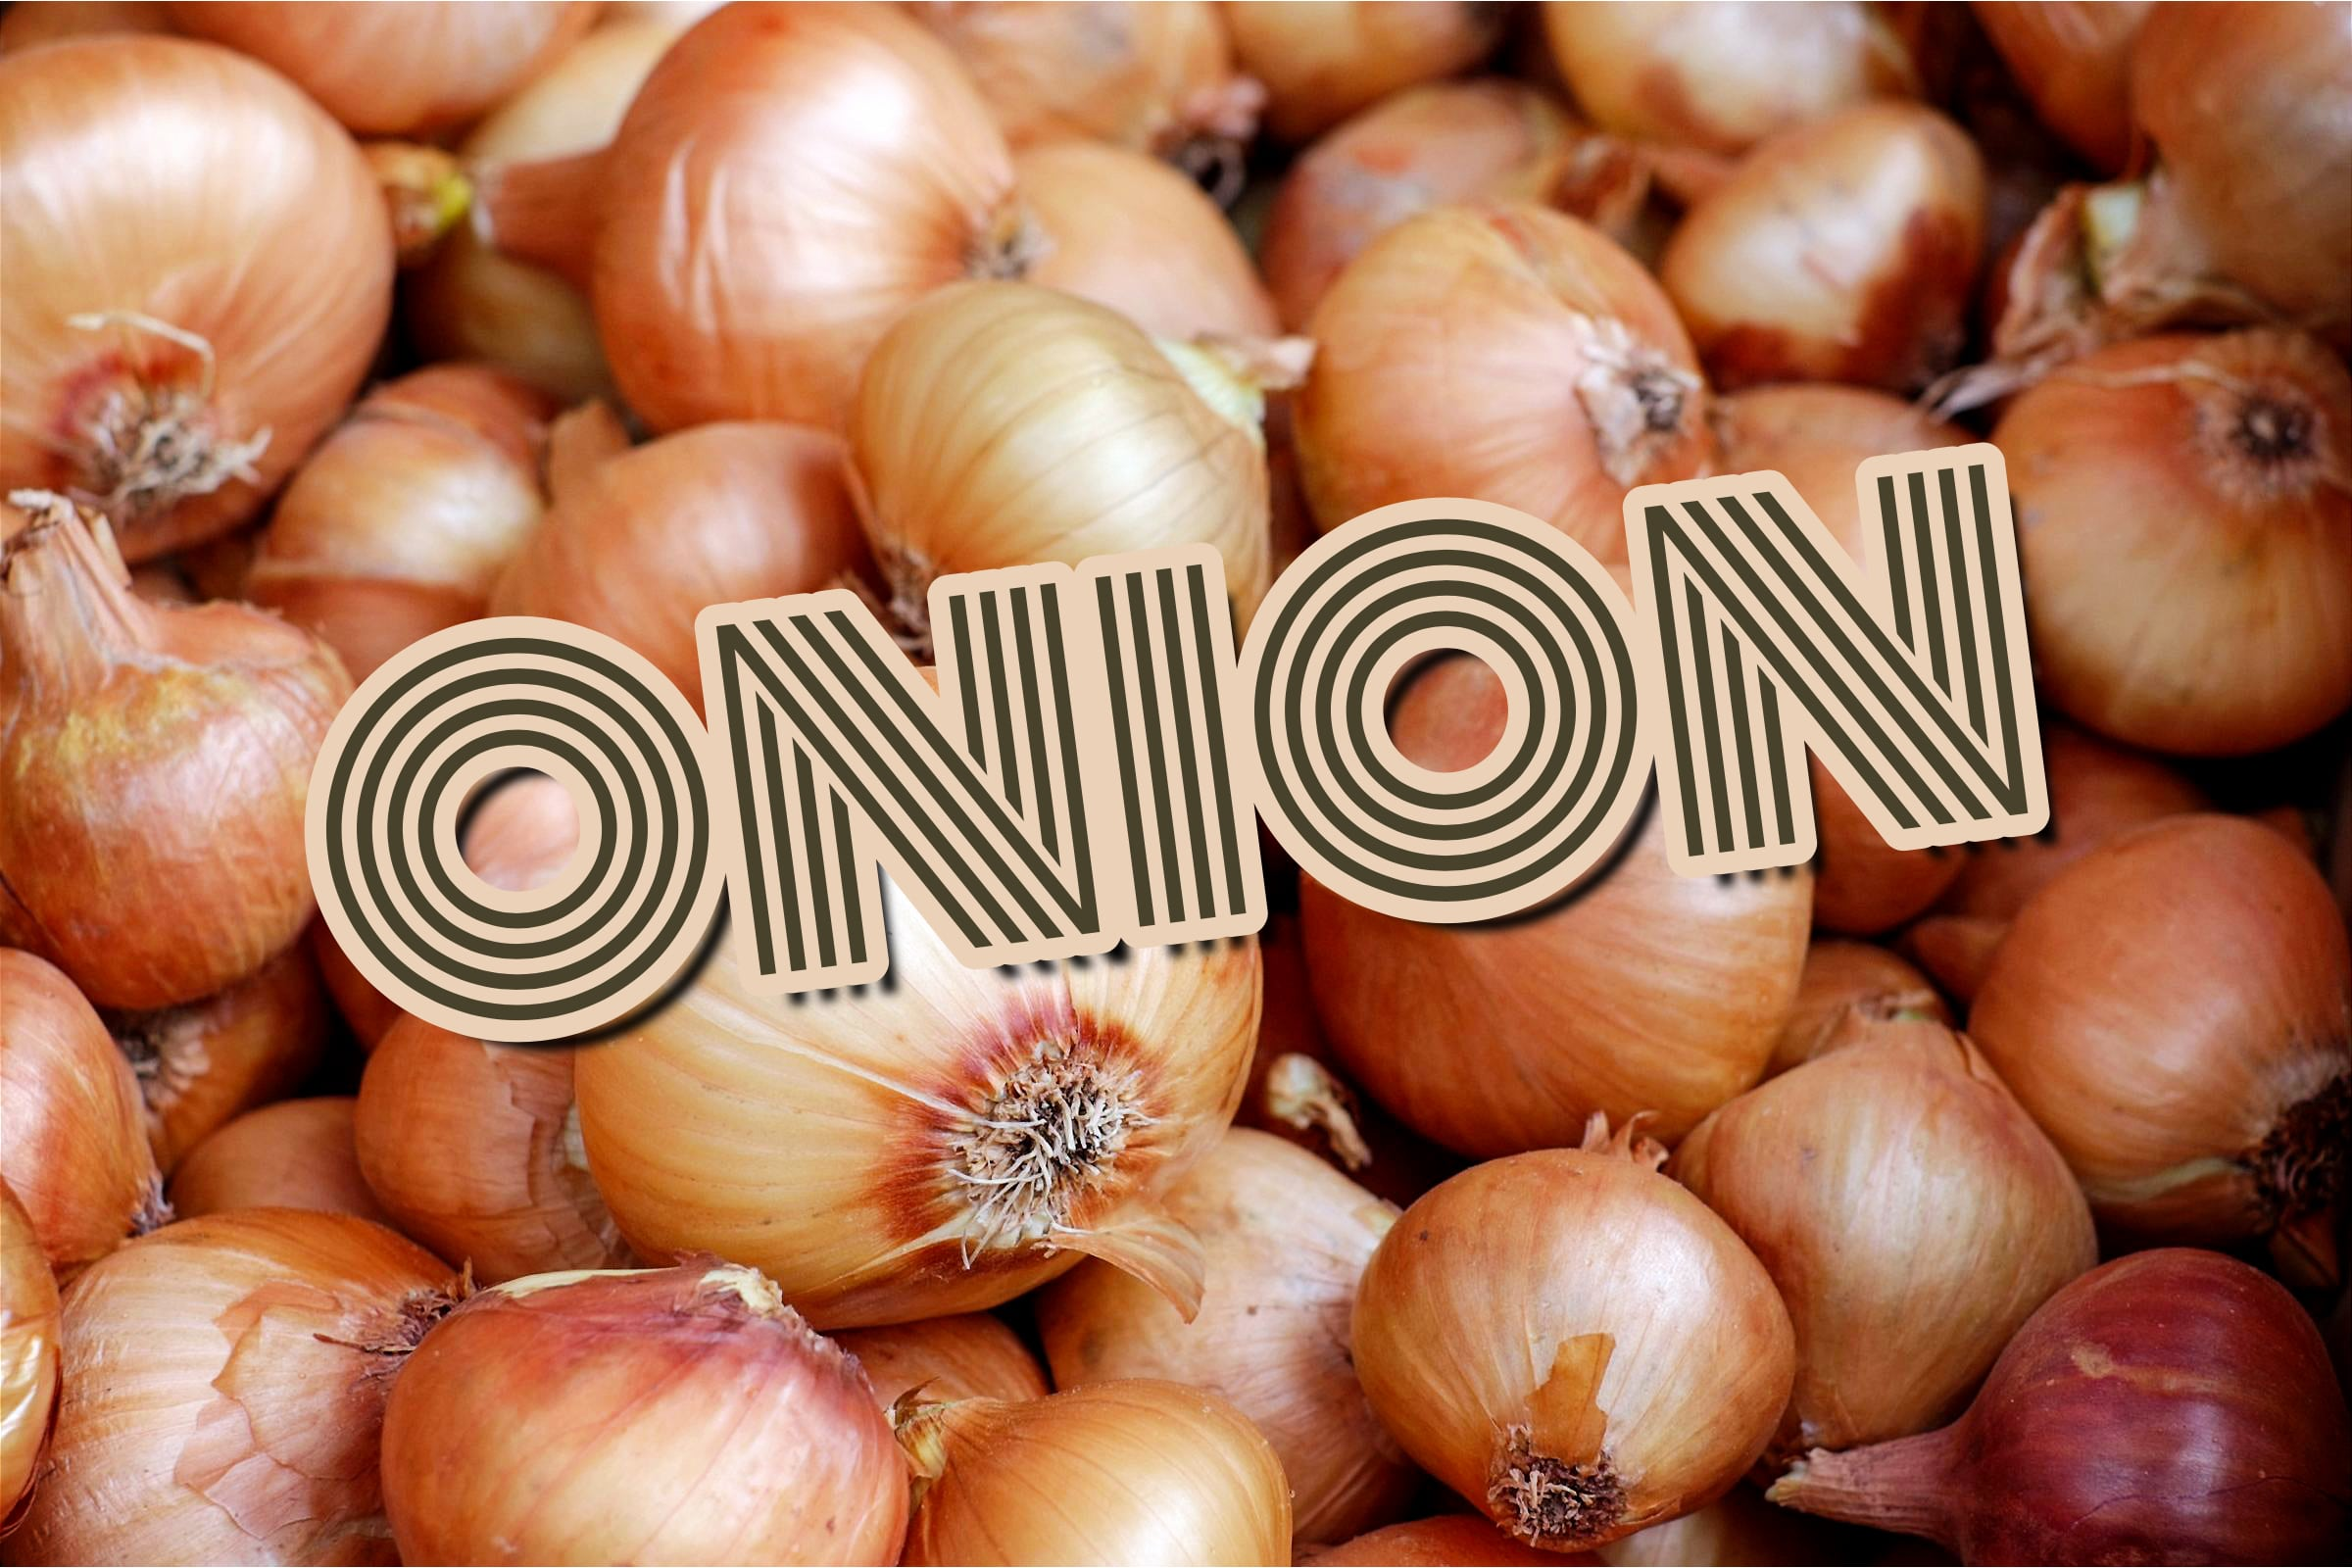 What Is The Onion Plant?